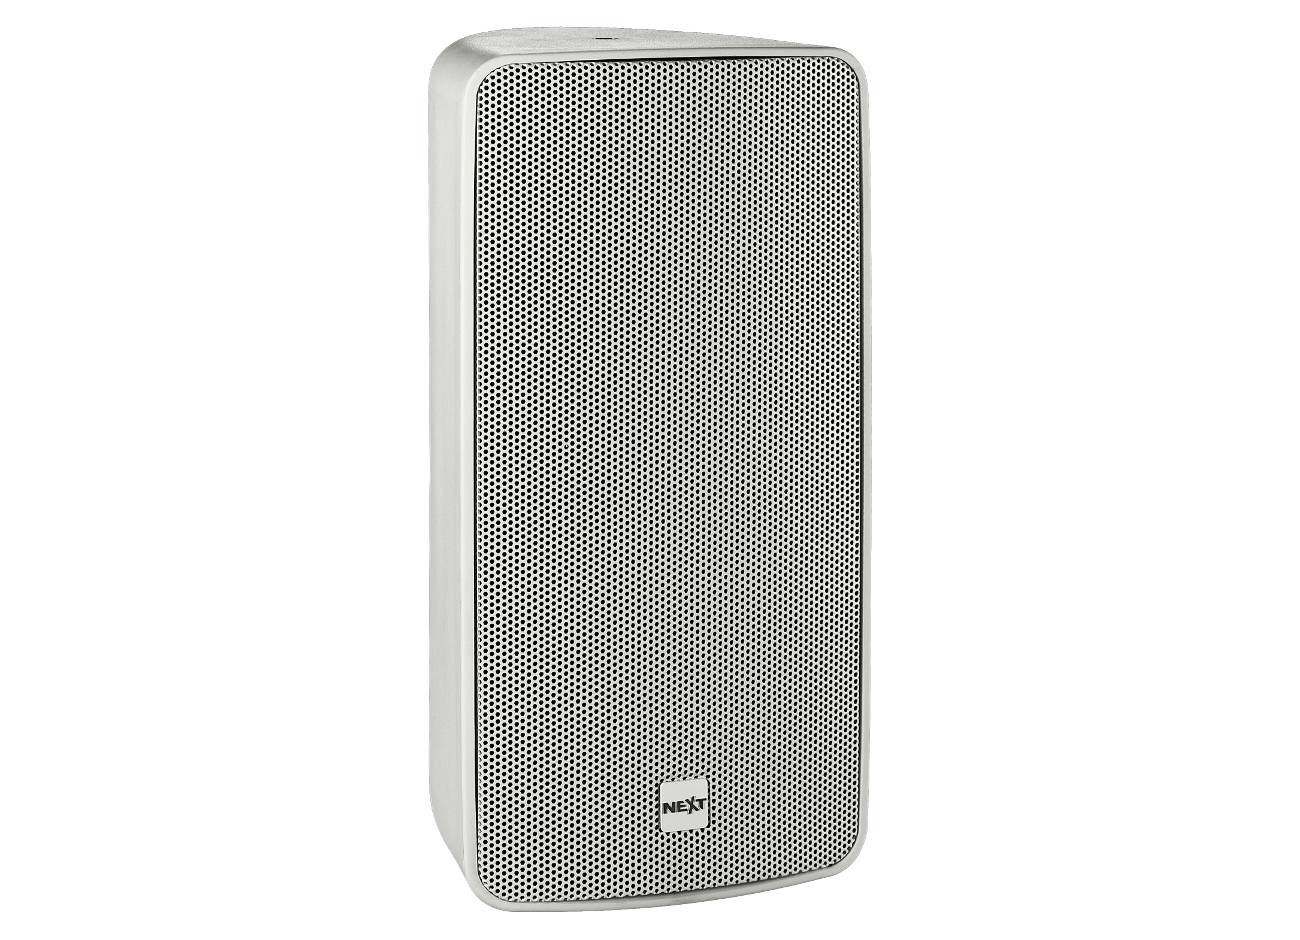 next-proaudio-i6-angle-white.png